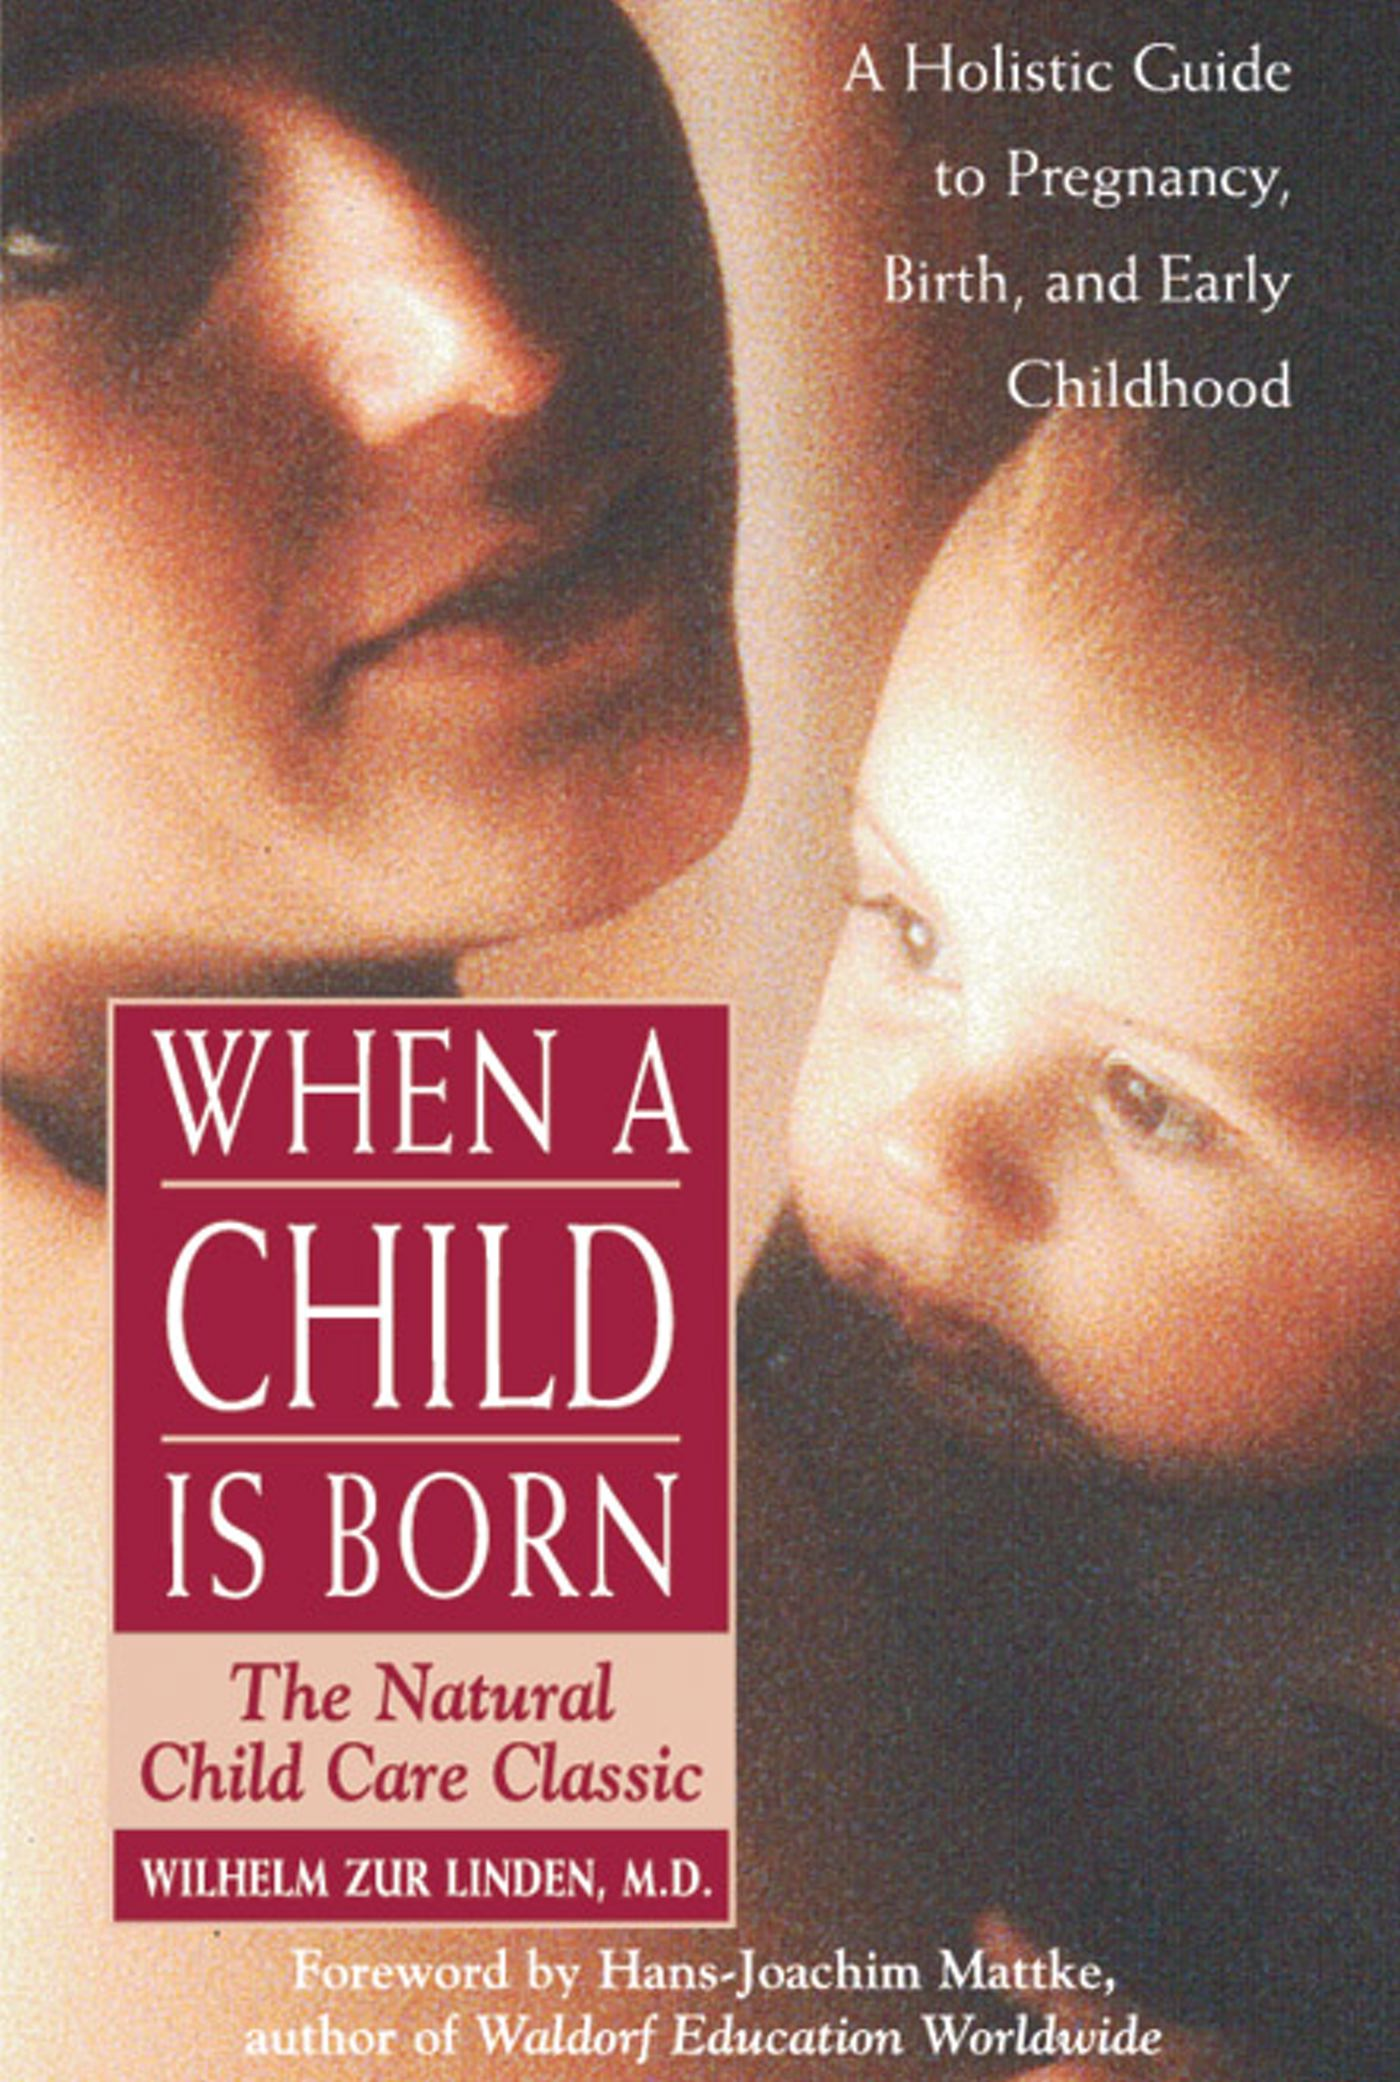 When-a-child-is-born-9780892817511_hr